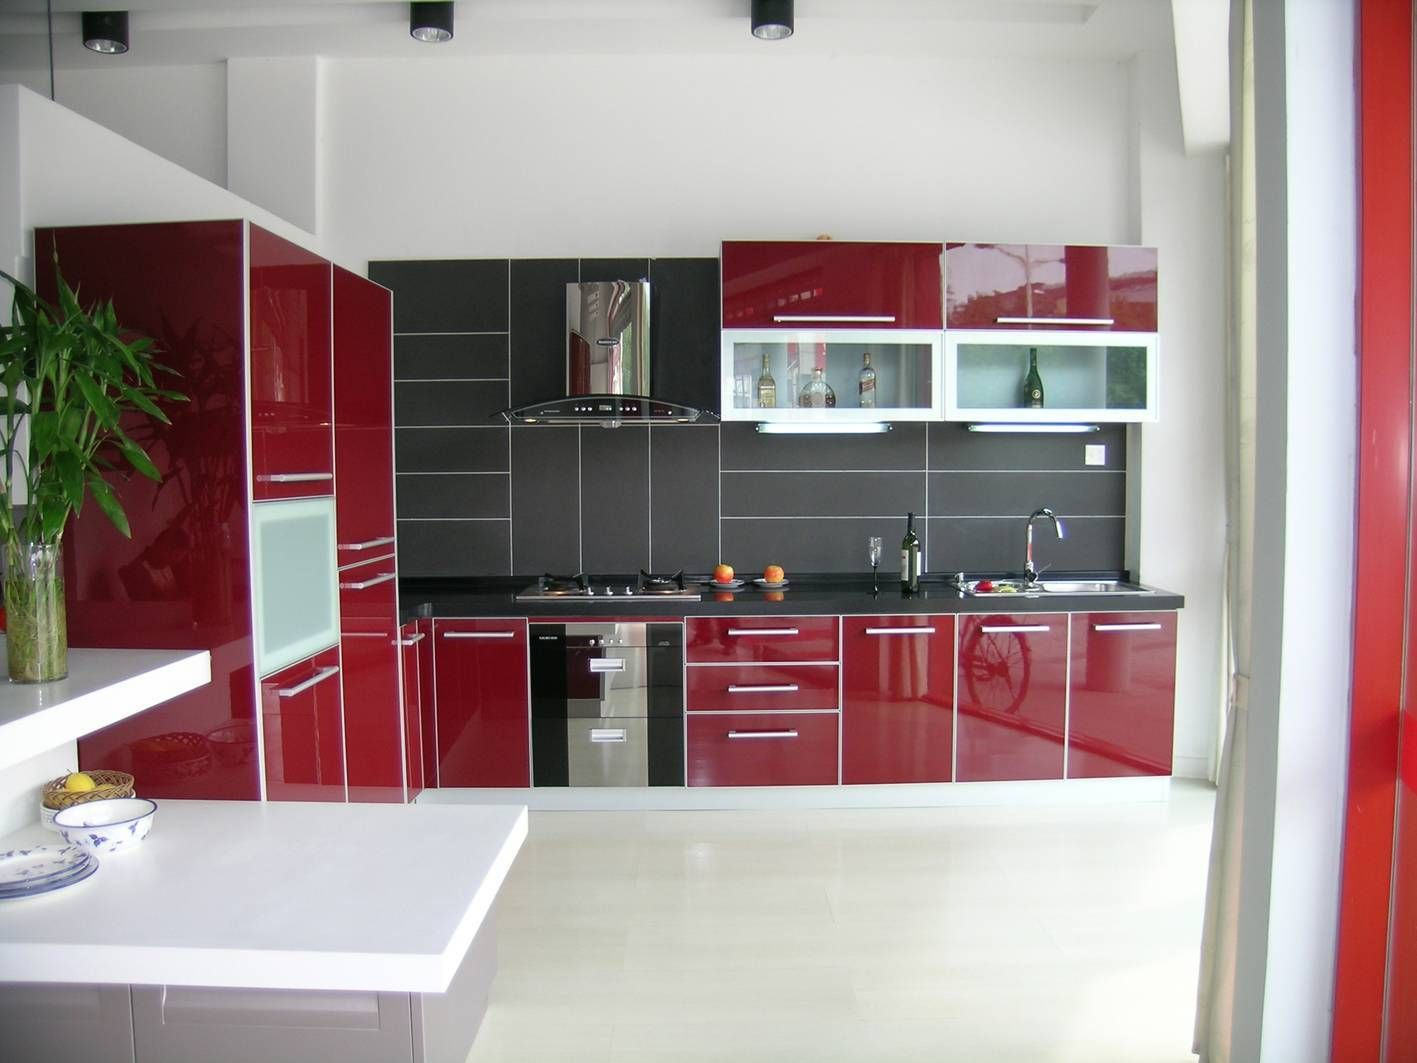 Home design lavish red kitchen cabinet feats with l - Black red and white kitchen designs ...